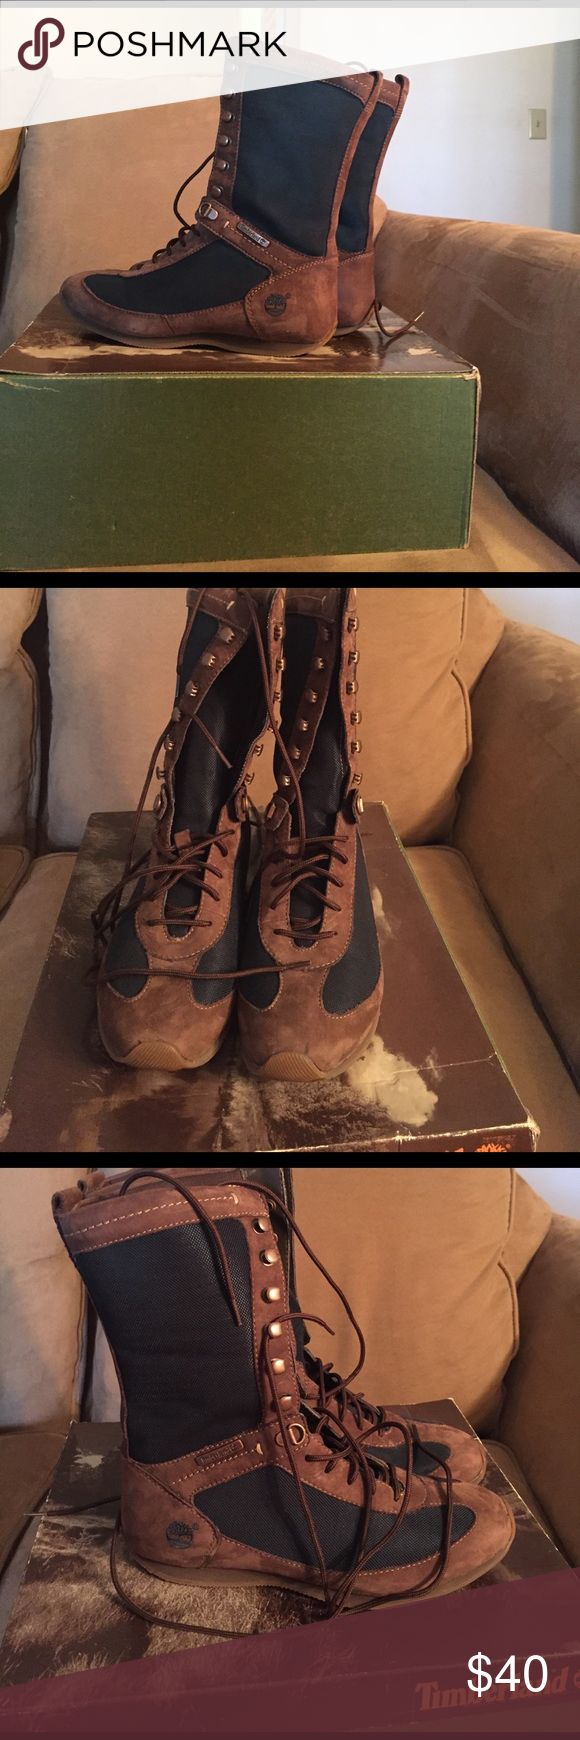 Timberlands Boots (Olive/Brown) ❤sale❤ Timberlands Lace Up Boot; Very comfortable; worn once; with box; no tags; looks great with shorts, jeans 👖, and 👗 Timberland Shoes Lace Up Boots